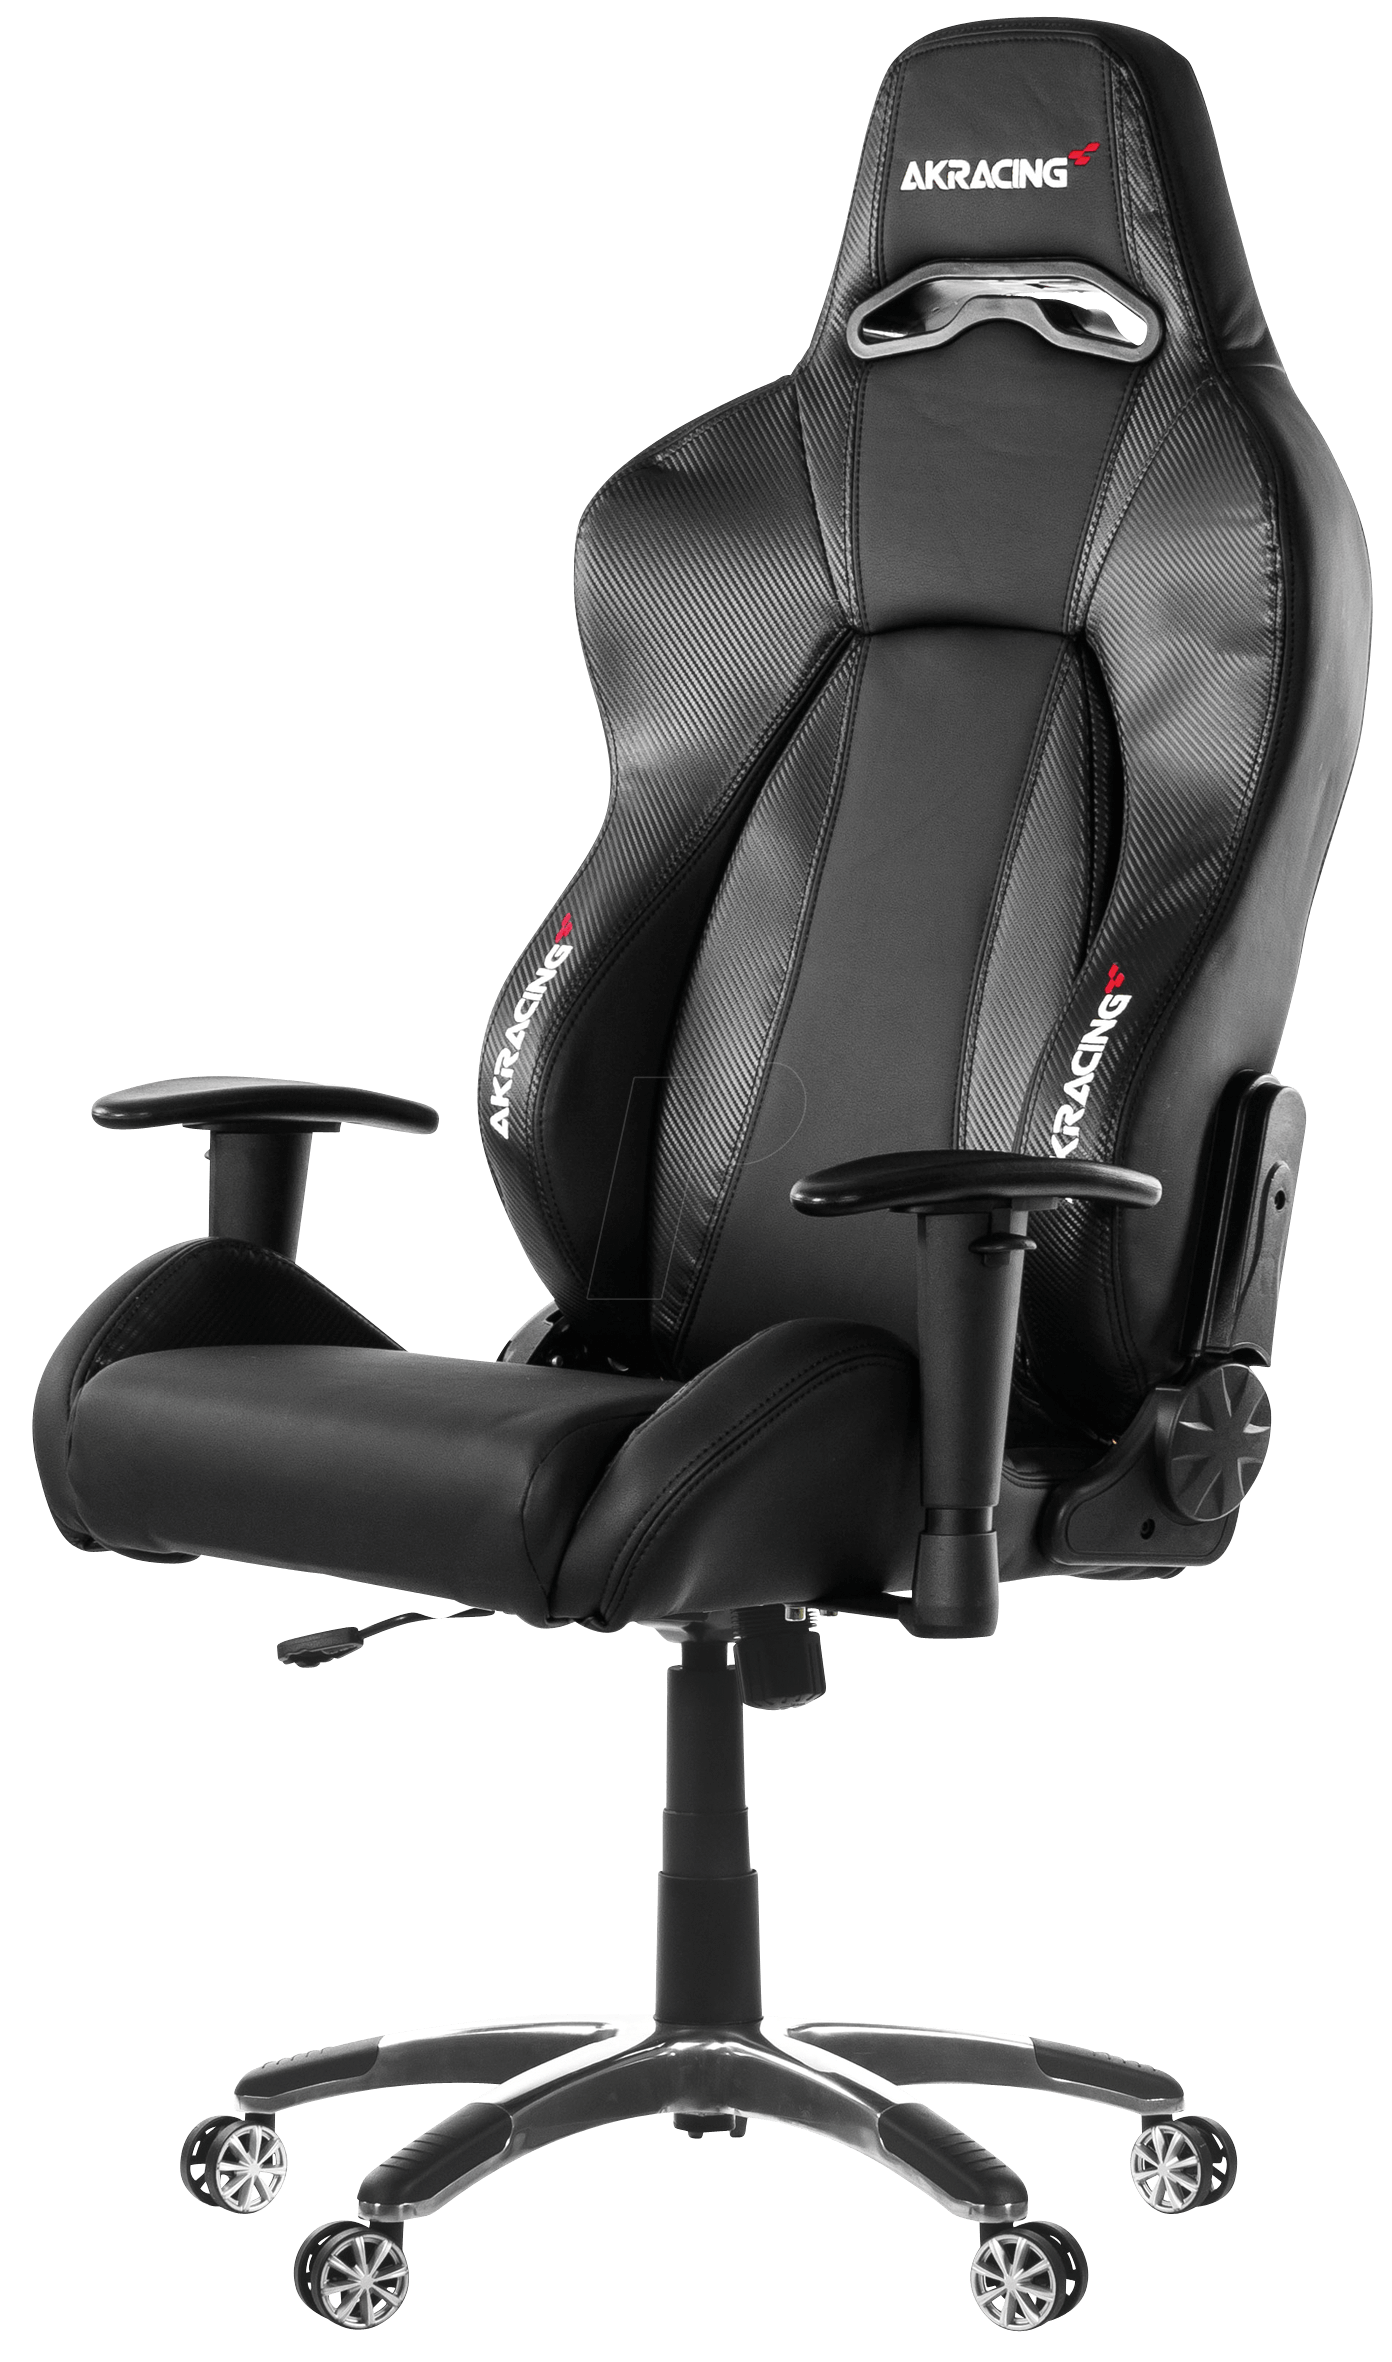 Gamer Sessel Günstig Akracing Premium V2 Gaming Chair Preisvergleich